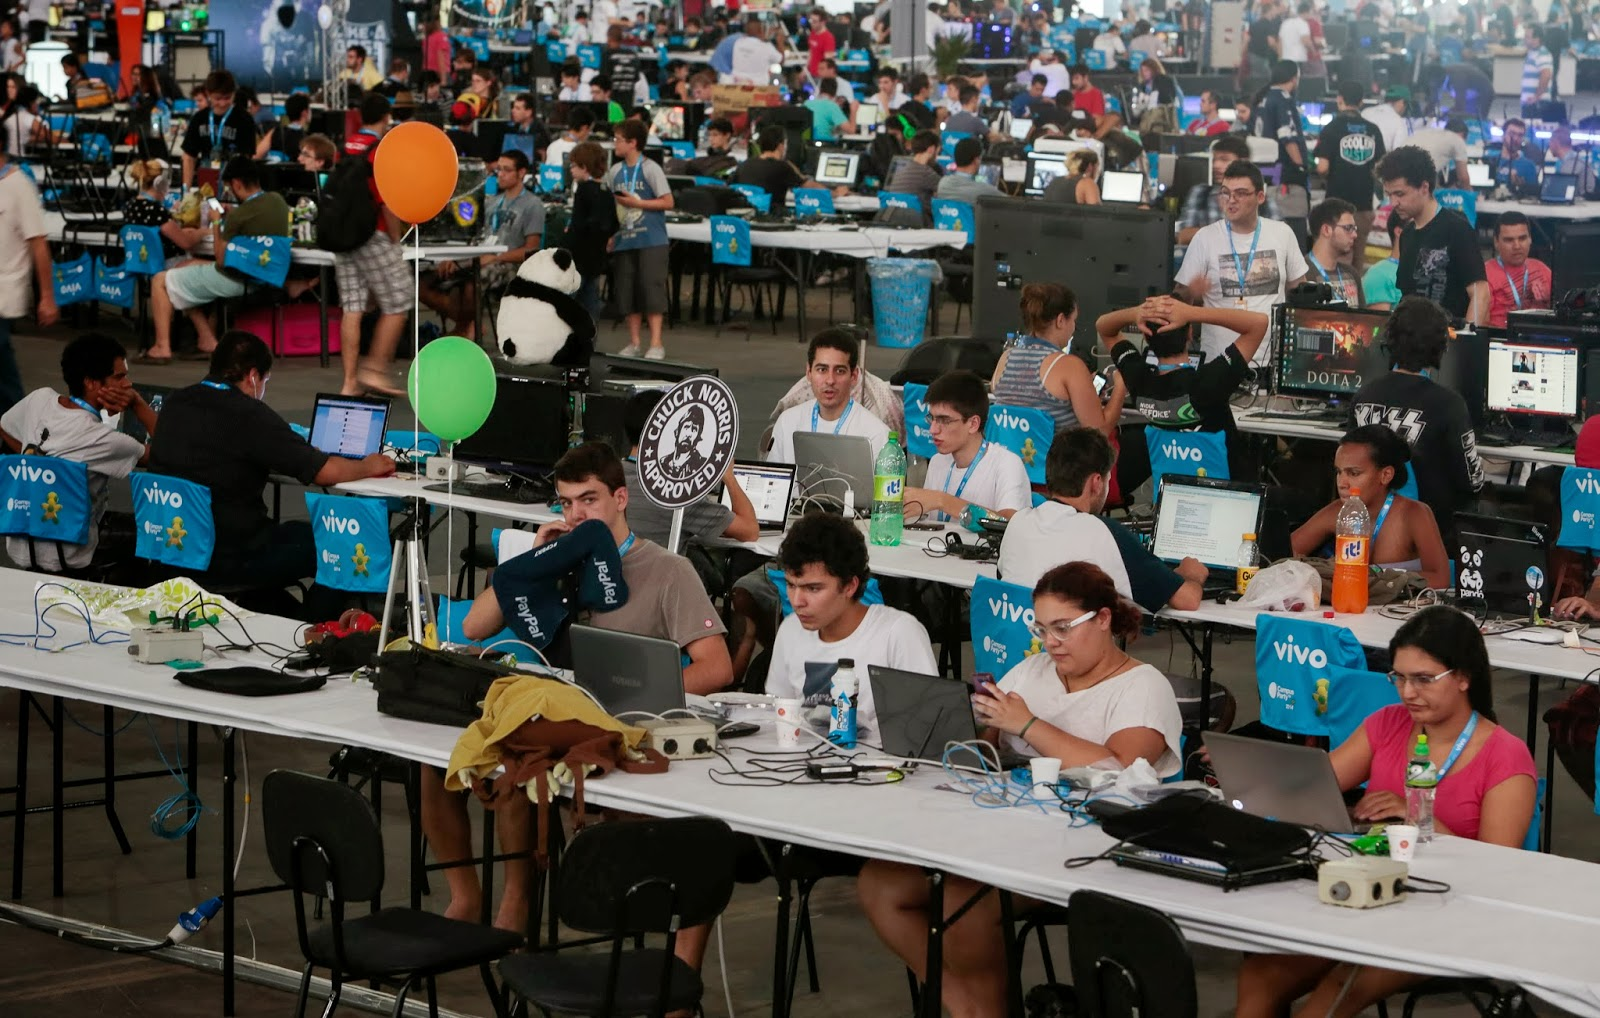 Technology Festival Campus Party in Brazil